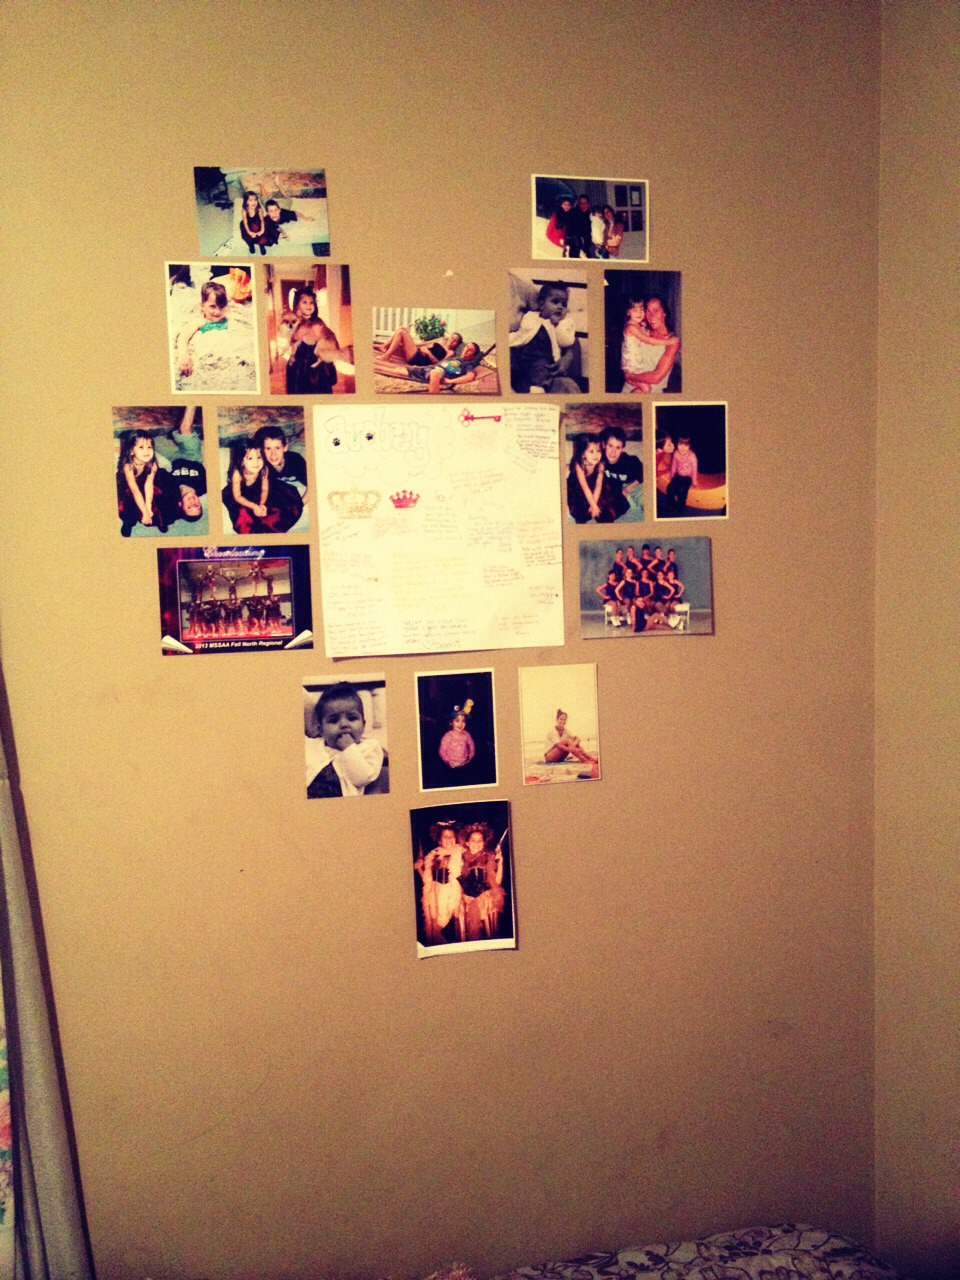 Make a heart or something creative with some pictures you really like and tape them to your wall